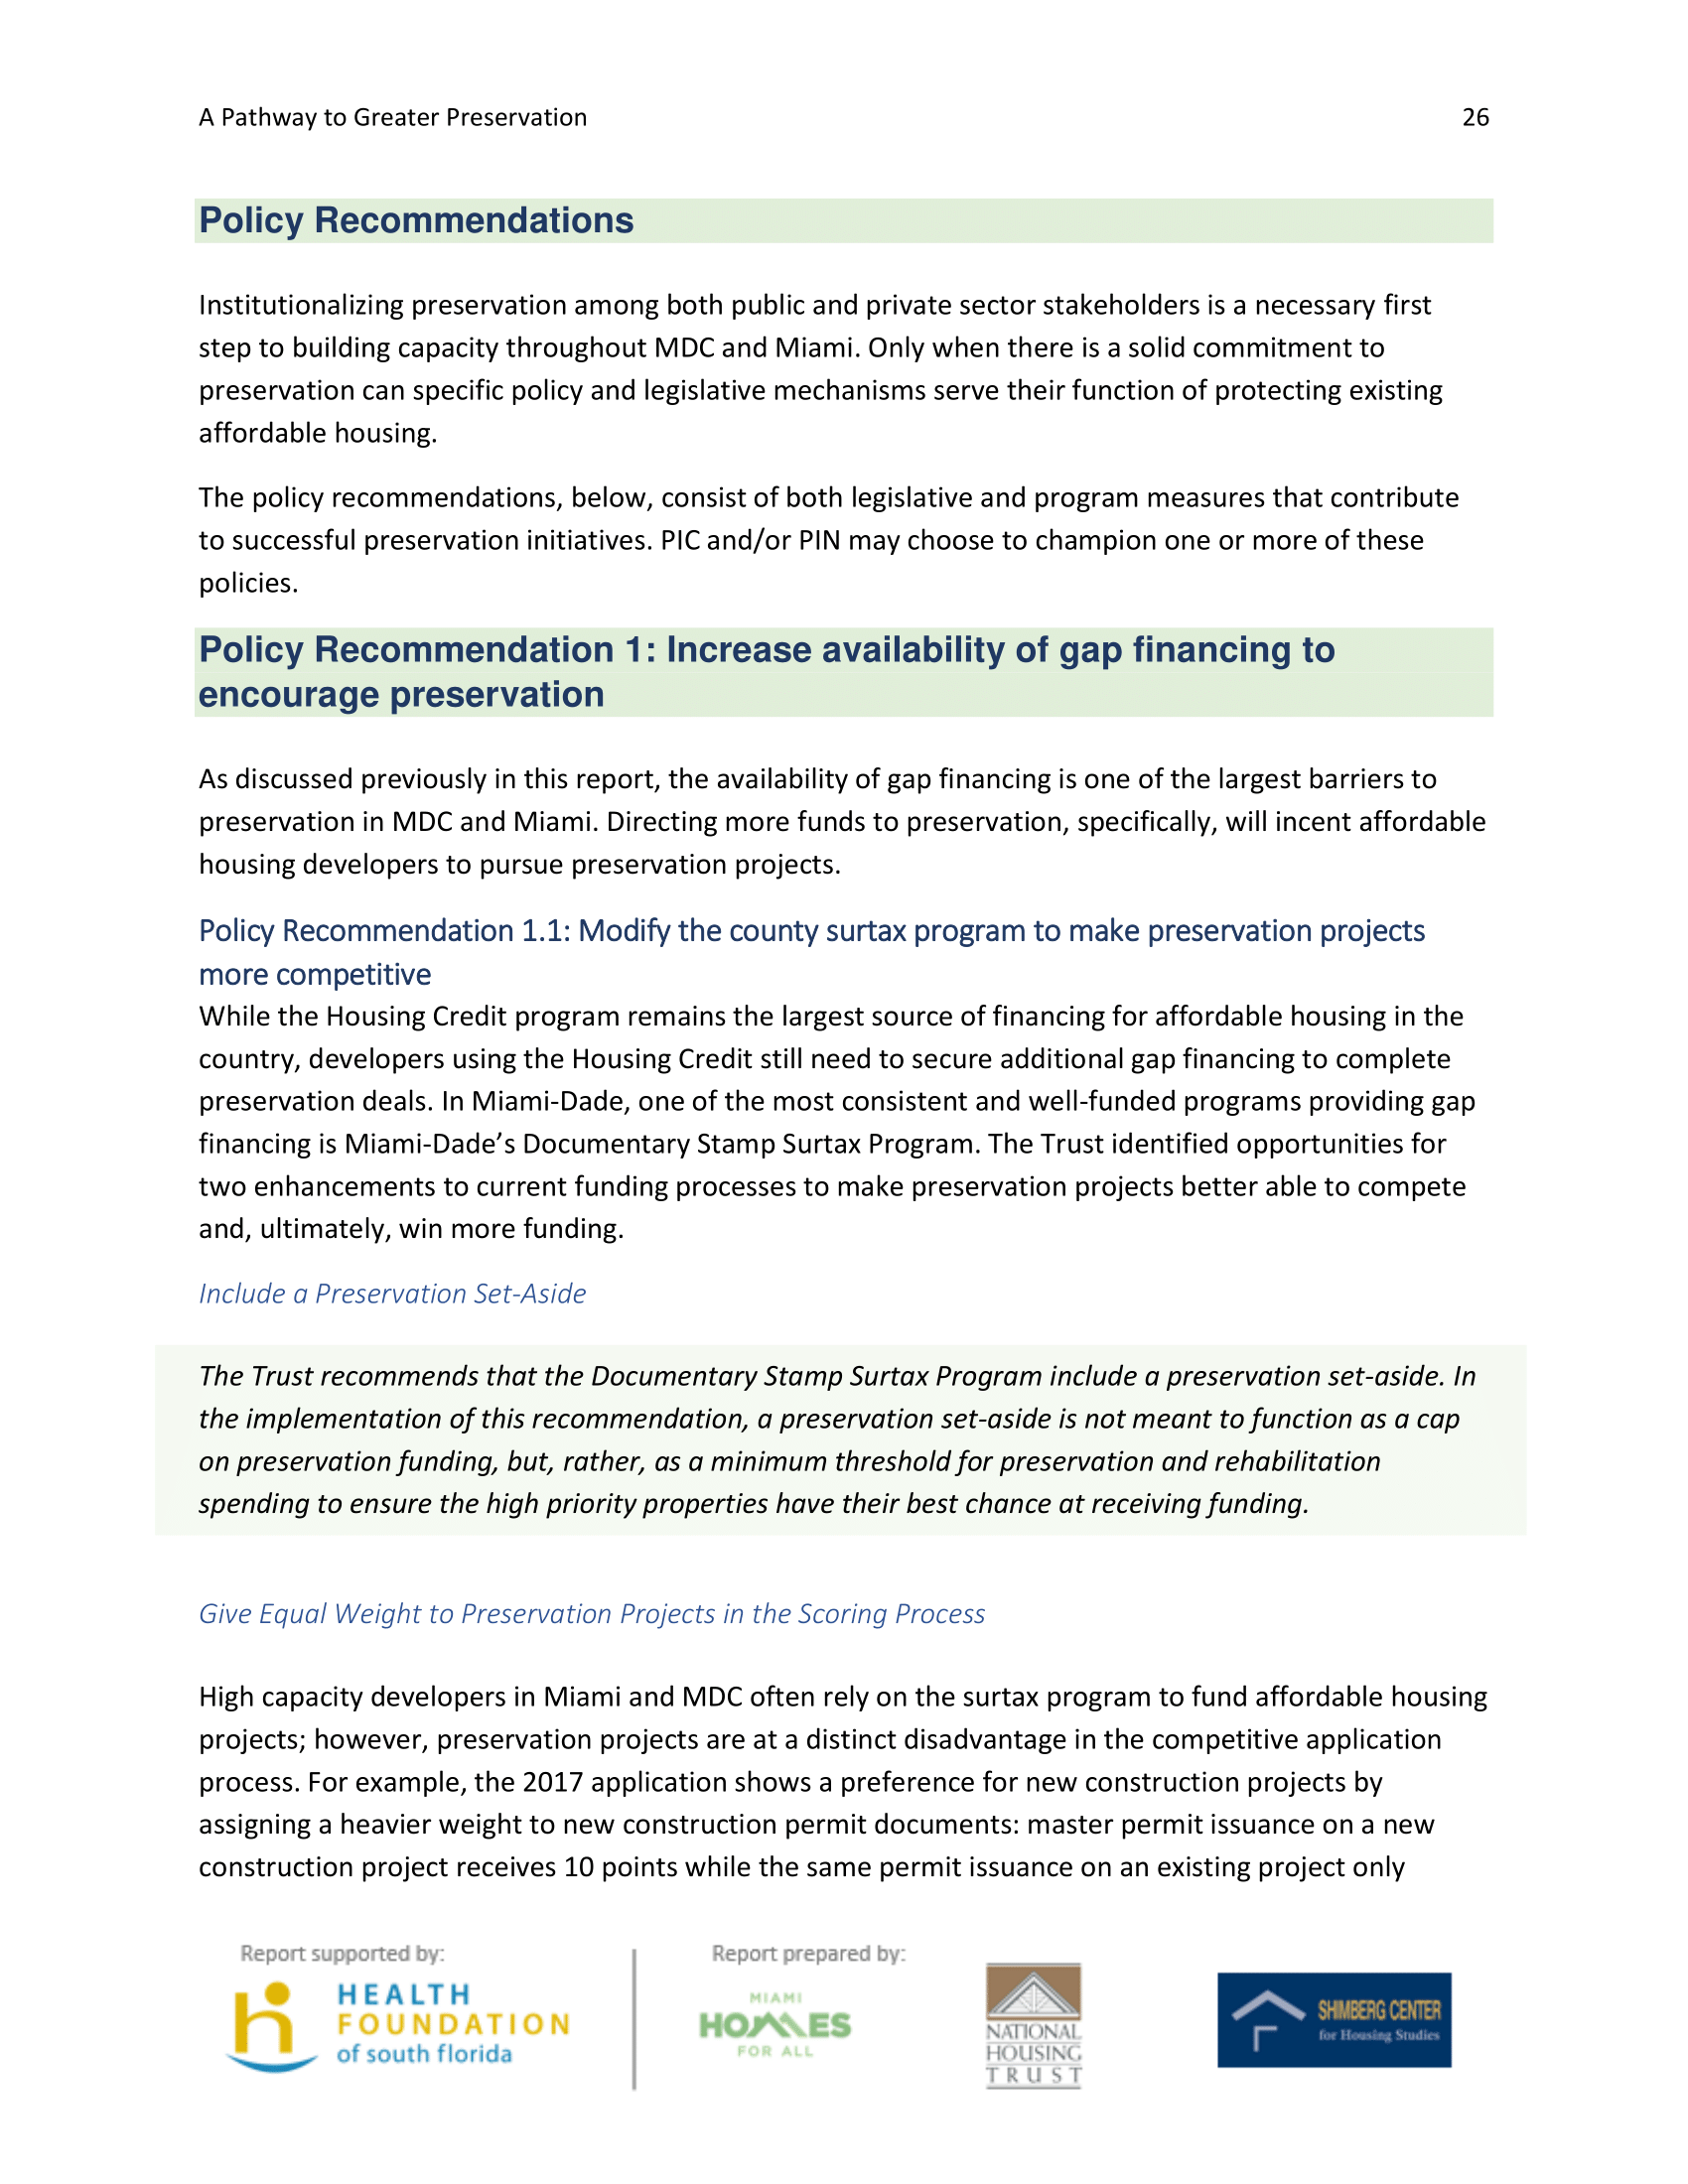 A Pathway to Greater Preservation - February 2018-34.png